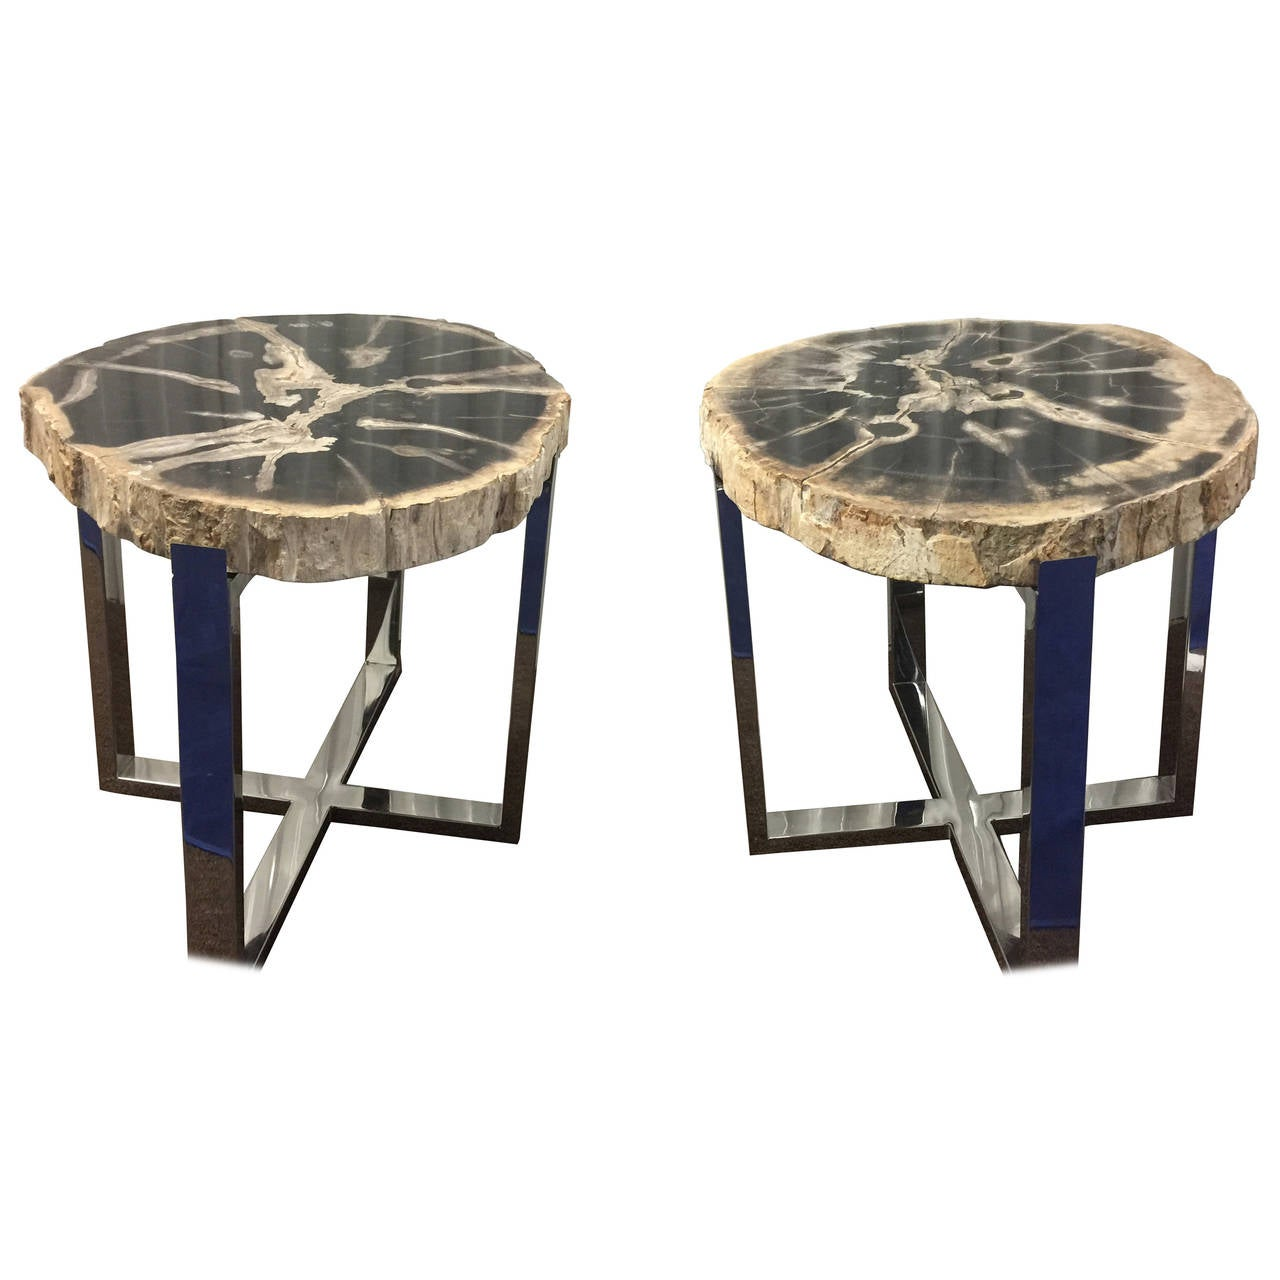 Organic modern style pair of petrified wood and chrome end